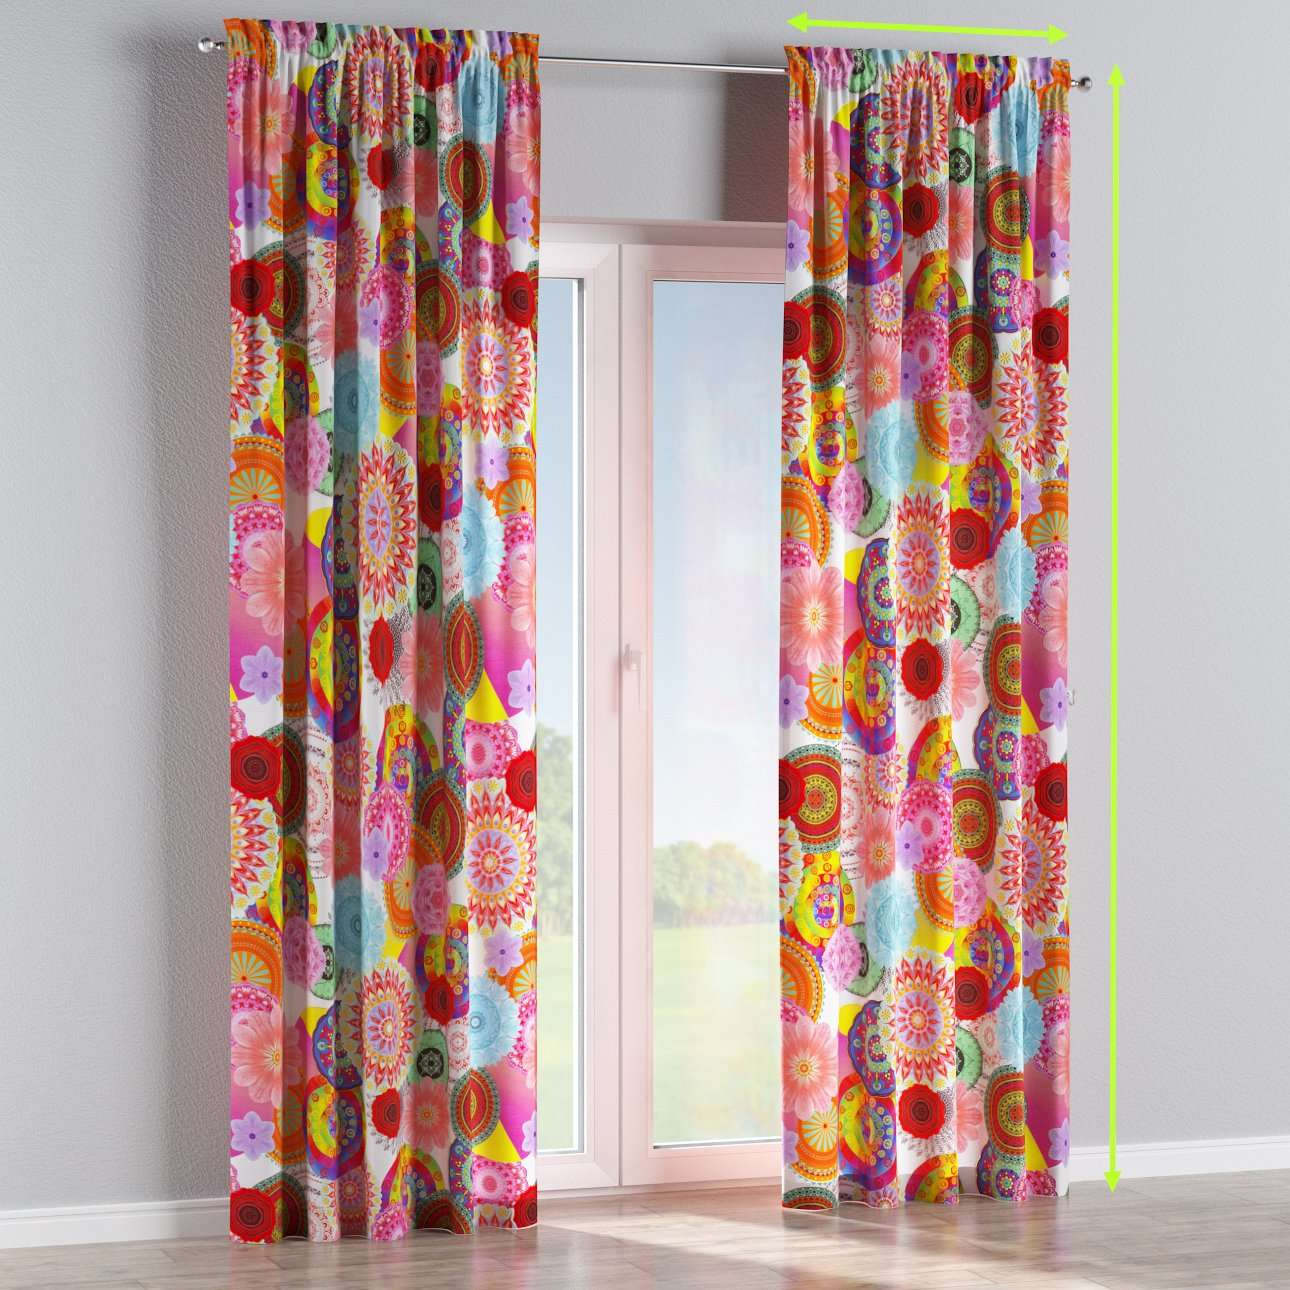 Slot and frill lined curtains in collection Comic Book & Geo Prints, fabric: 135-22